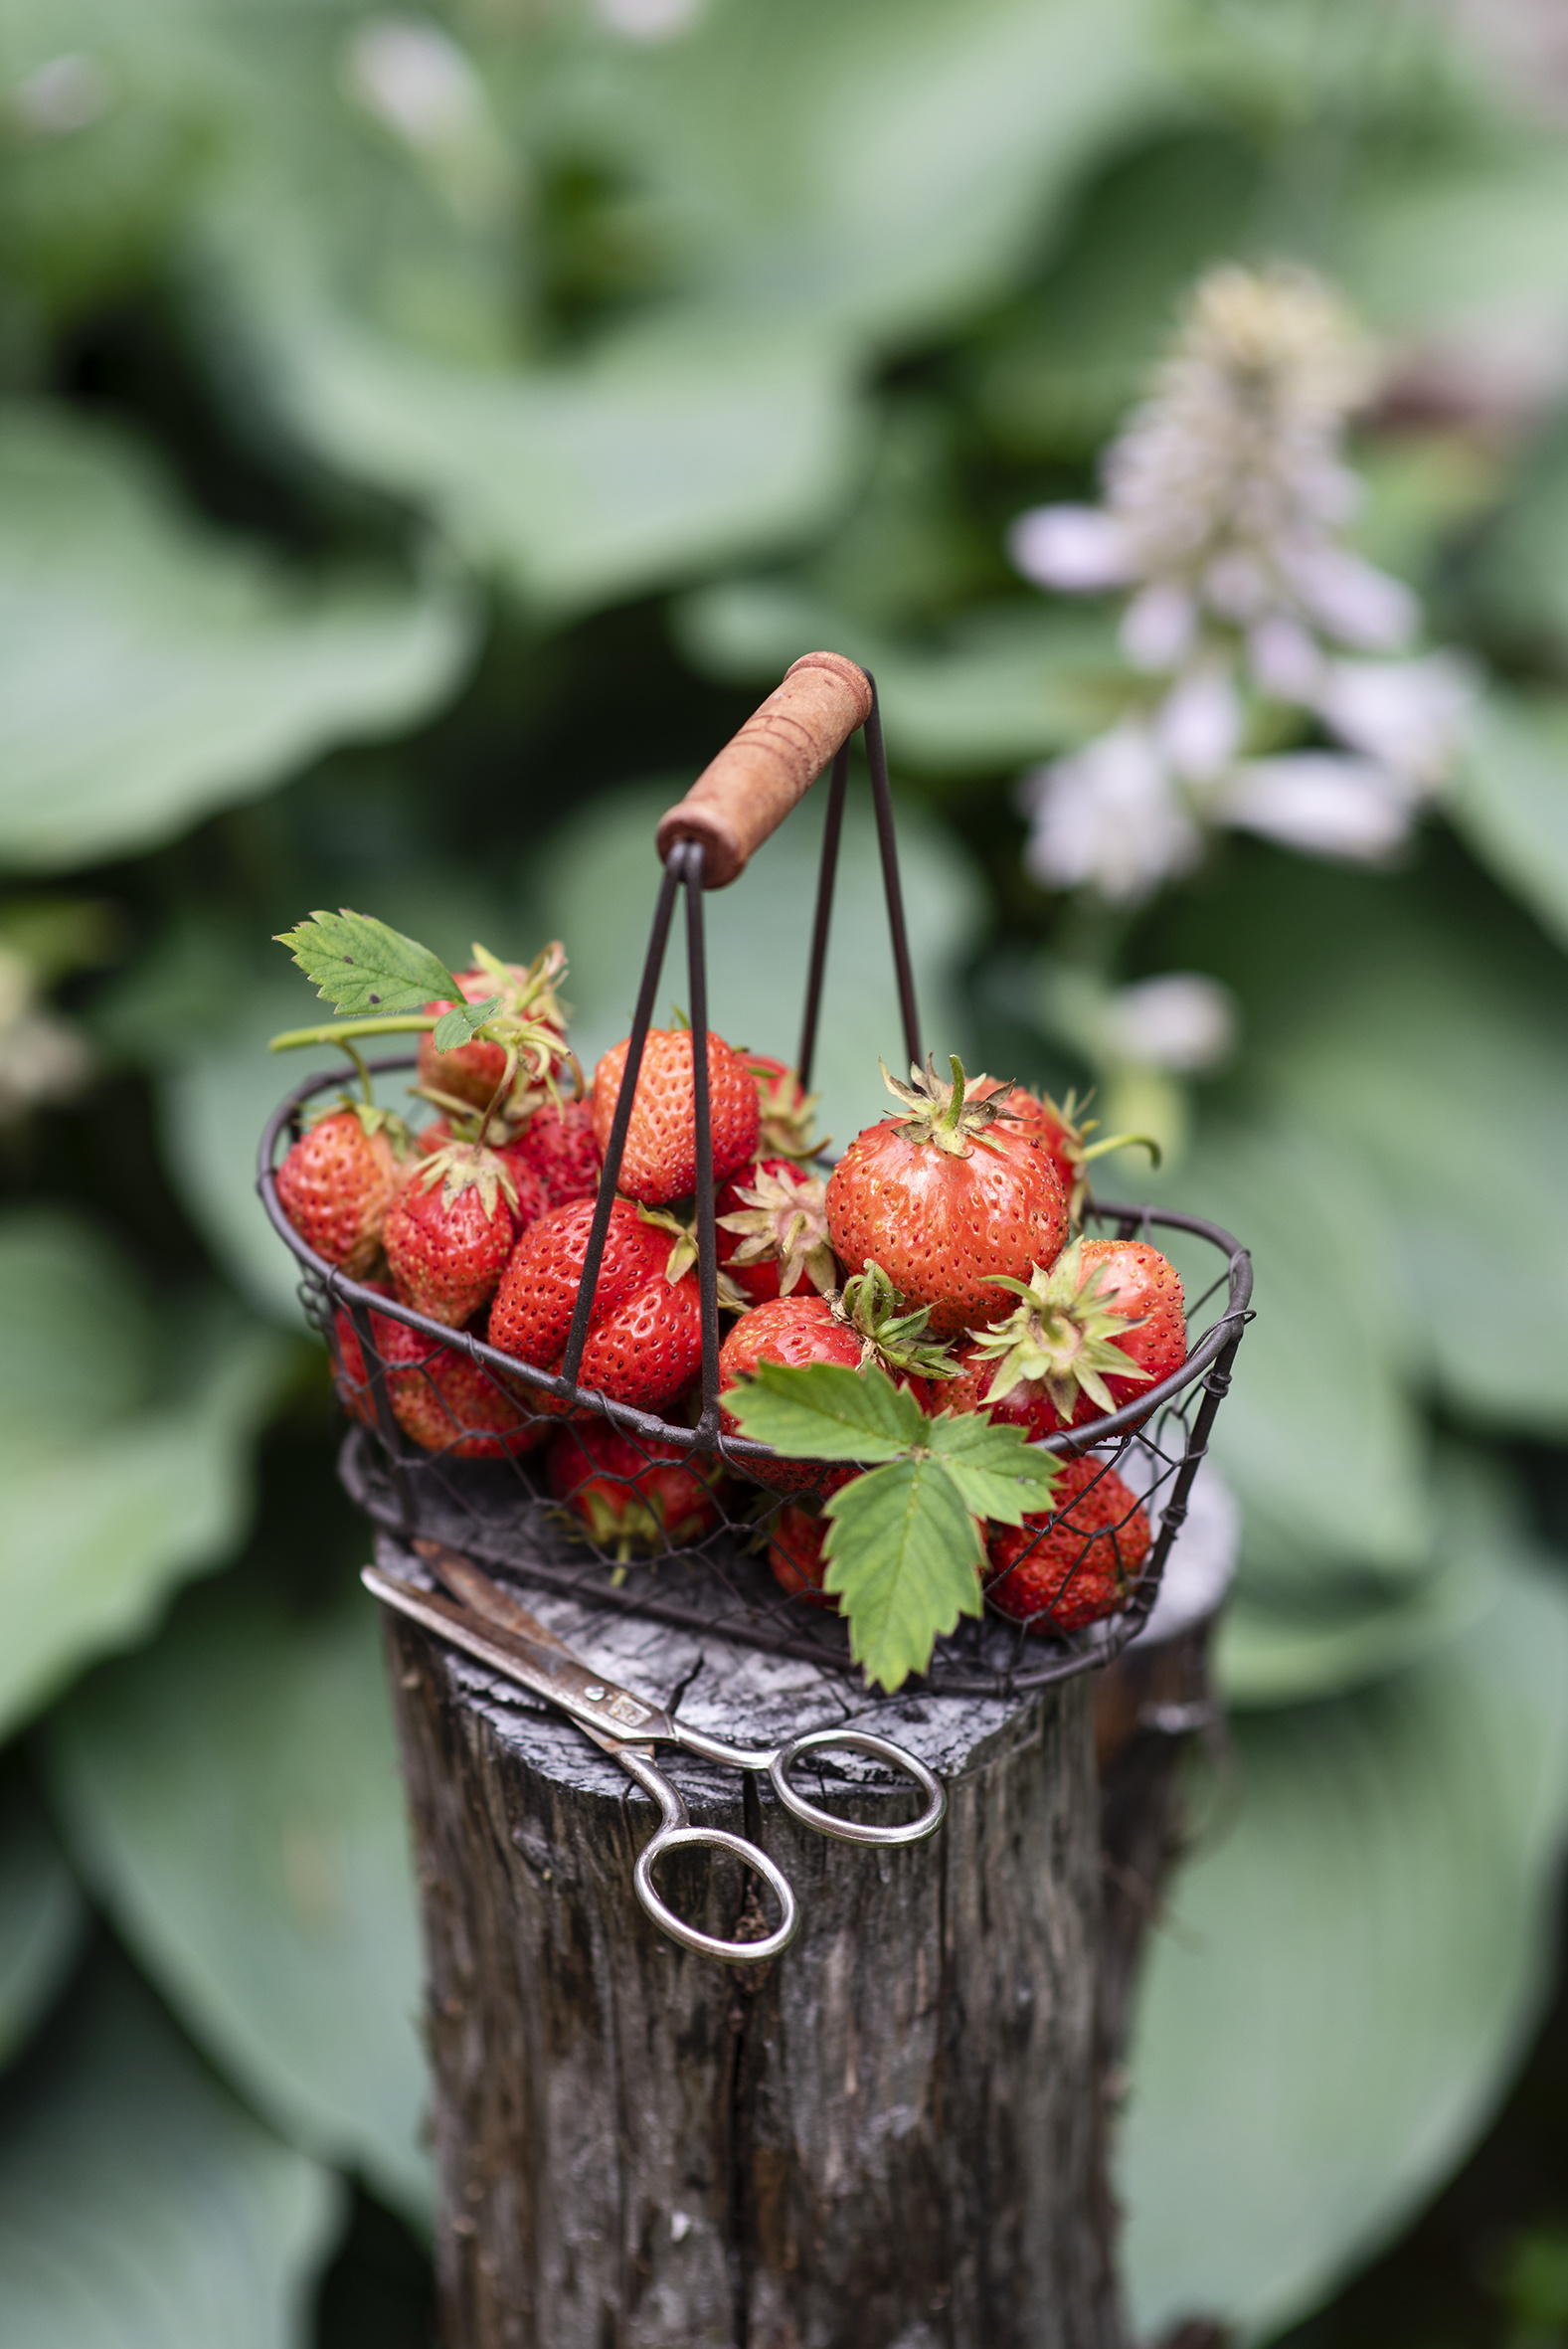 Image Strawberry Tree stump Wicker basket Food  for Mobile phone